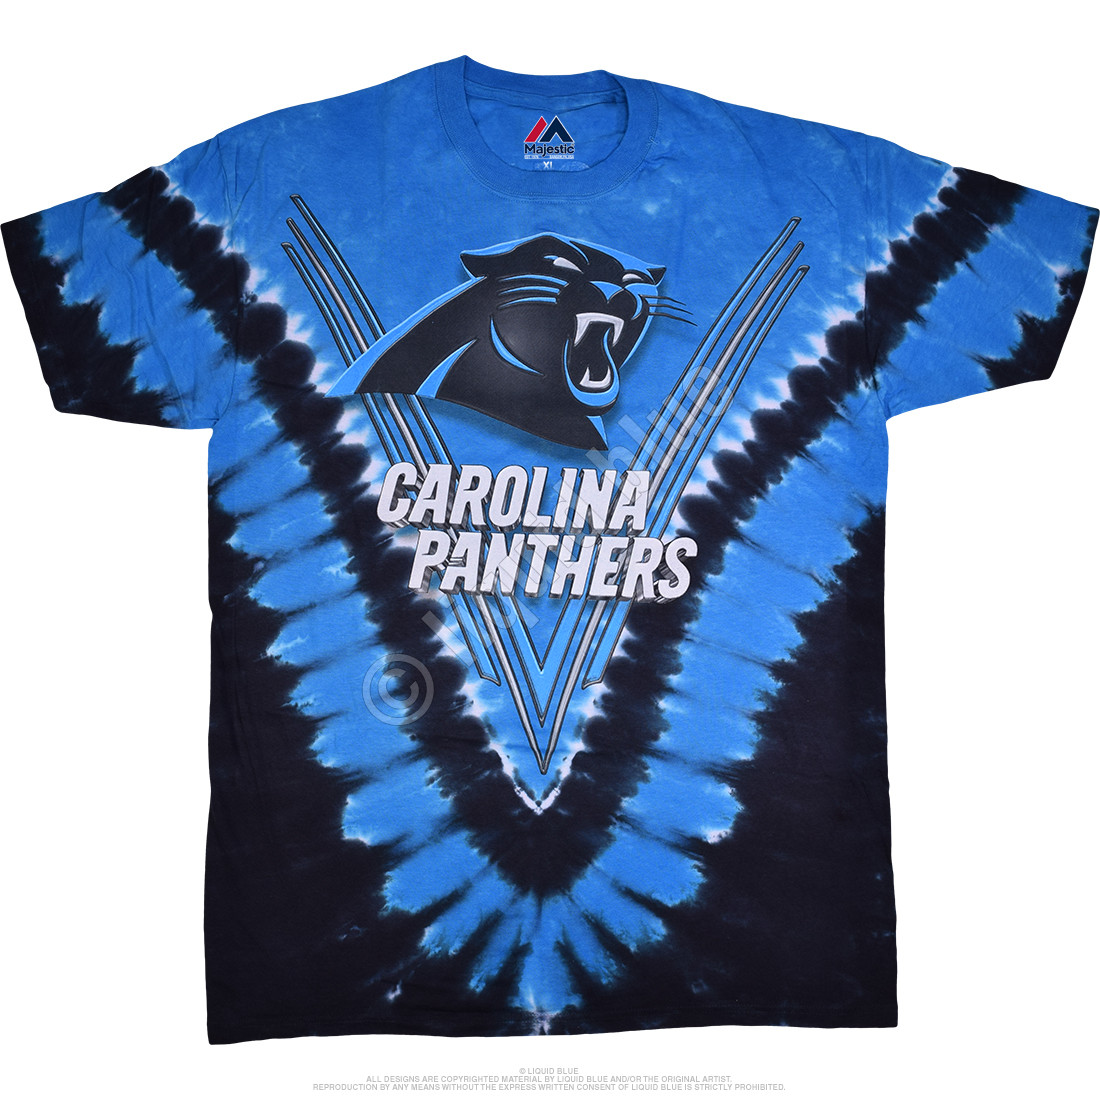 NFL Carolina Panthers V Tie-Dye T-Shirt Tee Liquid Blue c6cf3a8ce